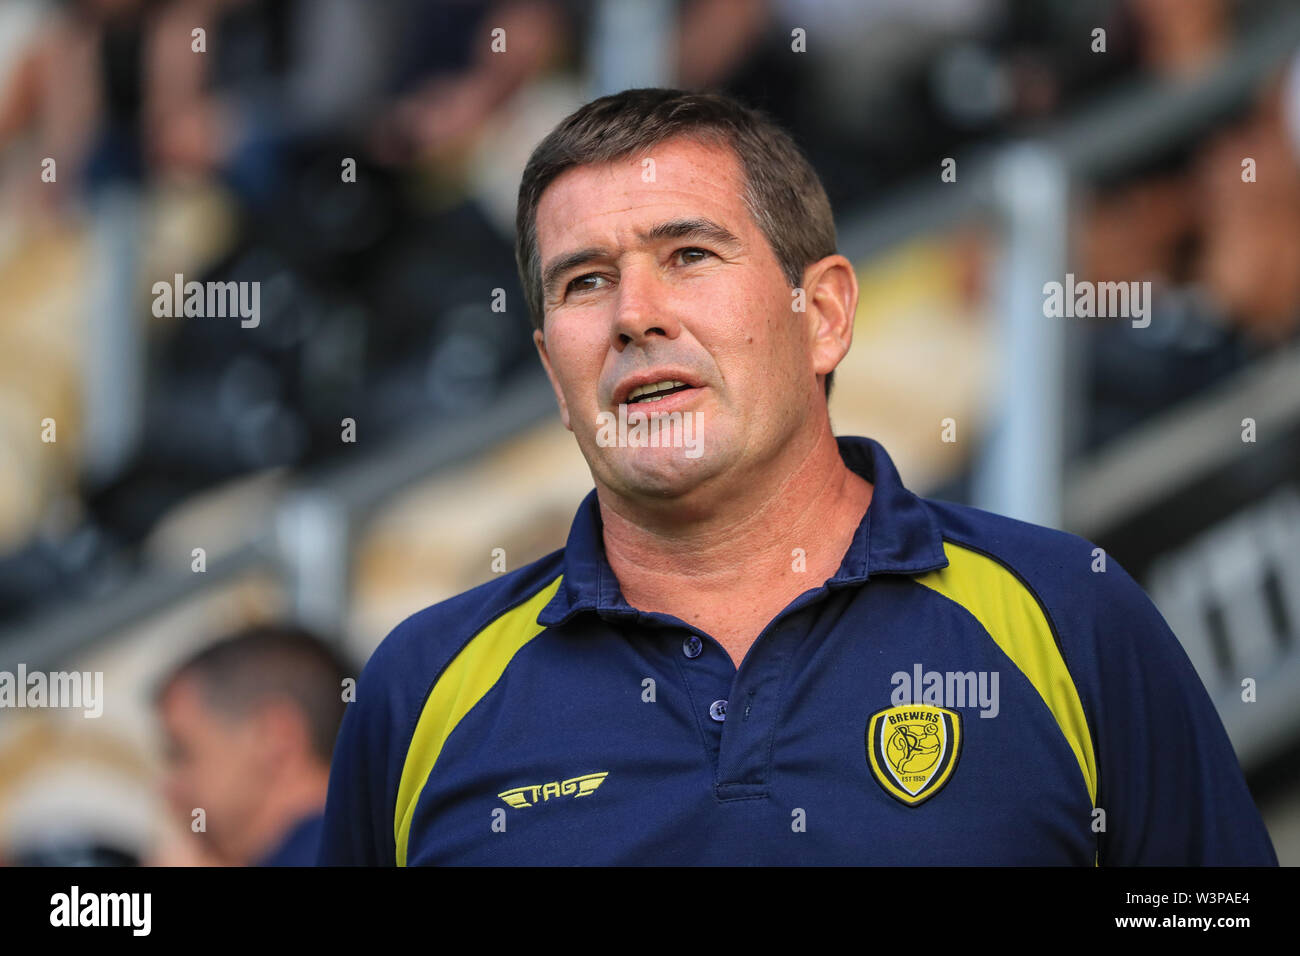 16th July 2019, Pirelli Stadium, Burton upon Trent, England; Pre-Season friendly, Burton Albion vs Sheffield United : Nigel Clough Manager of Burton Albion before kickoff Credit: Mark Cosgrove/News Images  English Football League images are subject to DataCo Licence - Stock Image